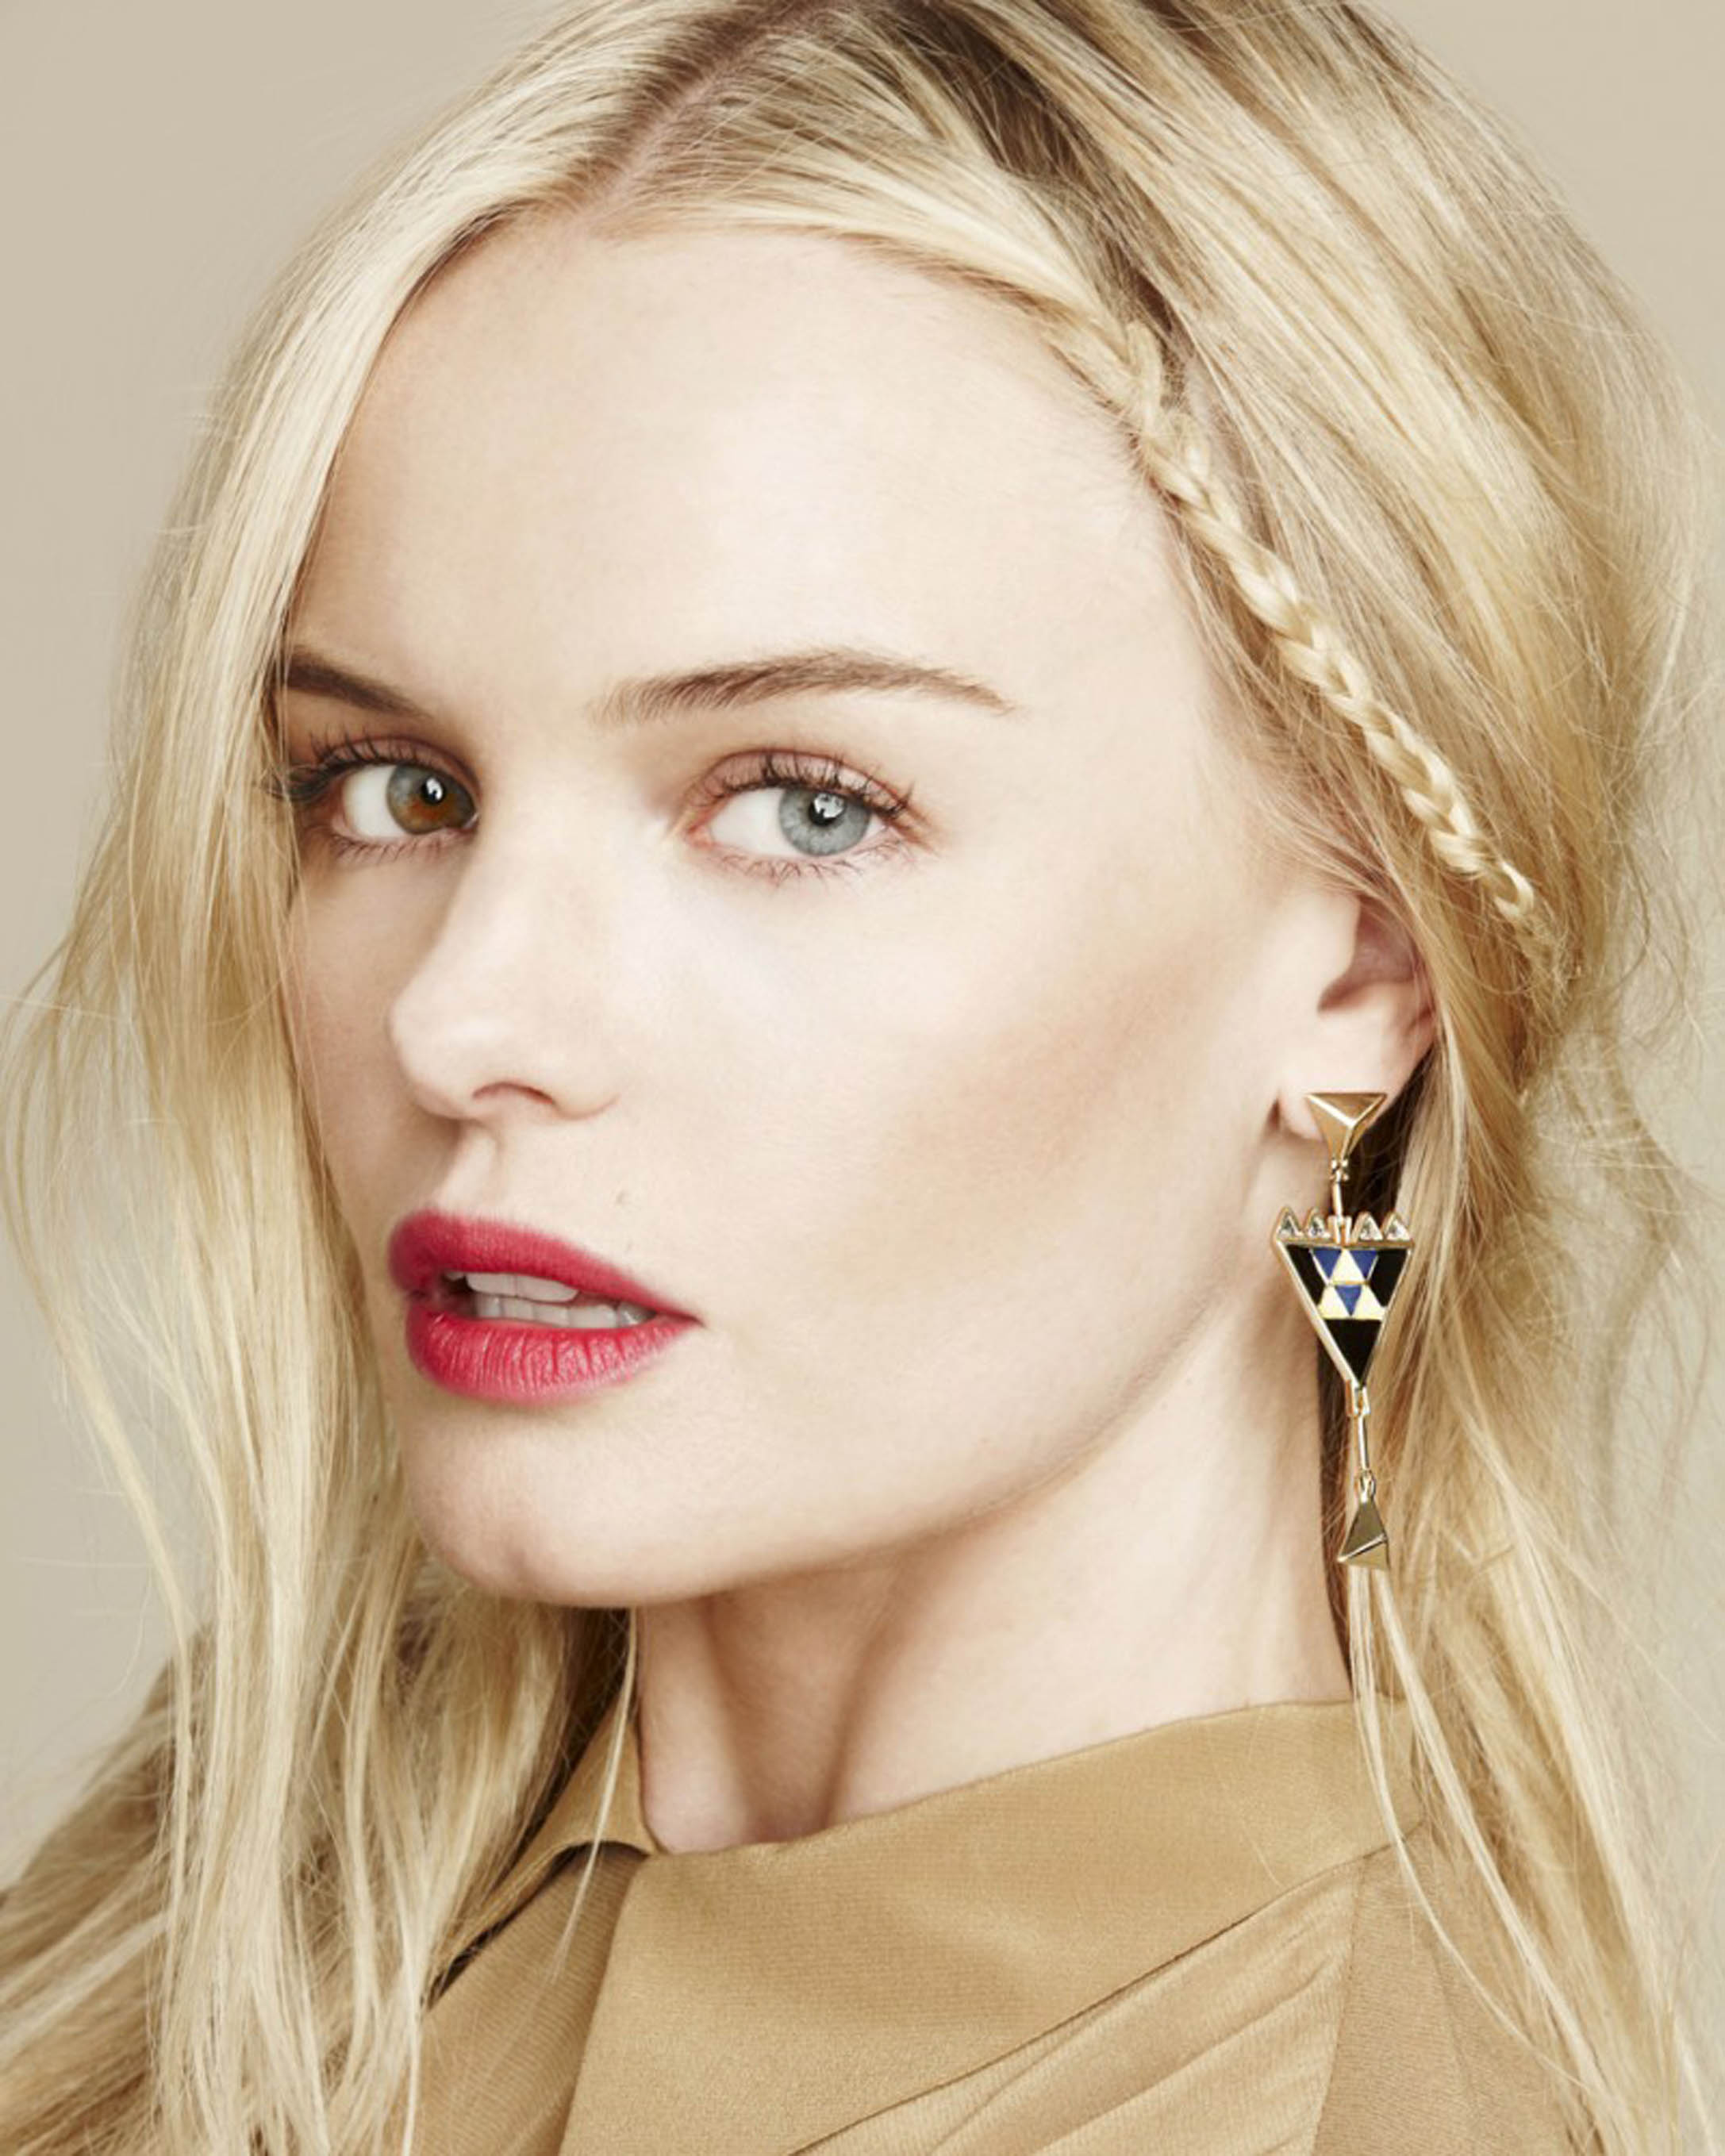 Movie actress Kate Bosworth - age: 38